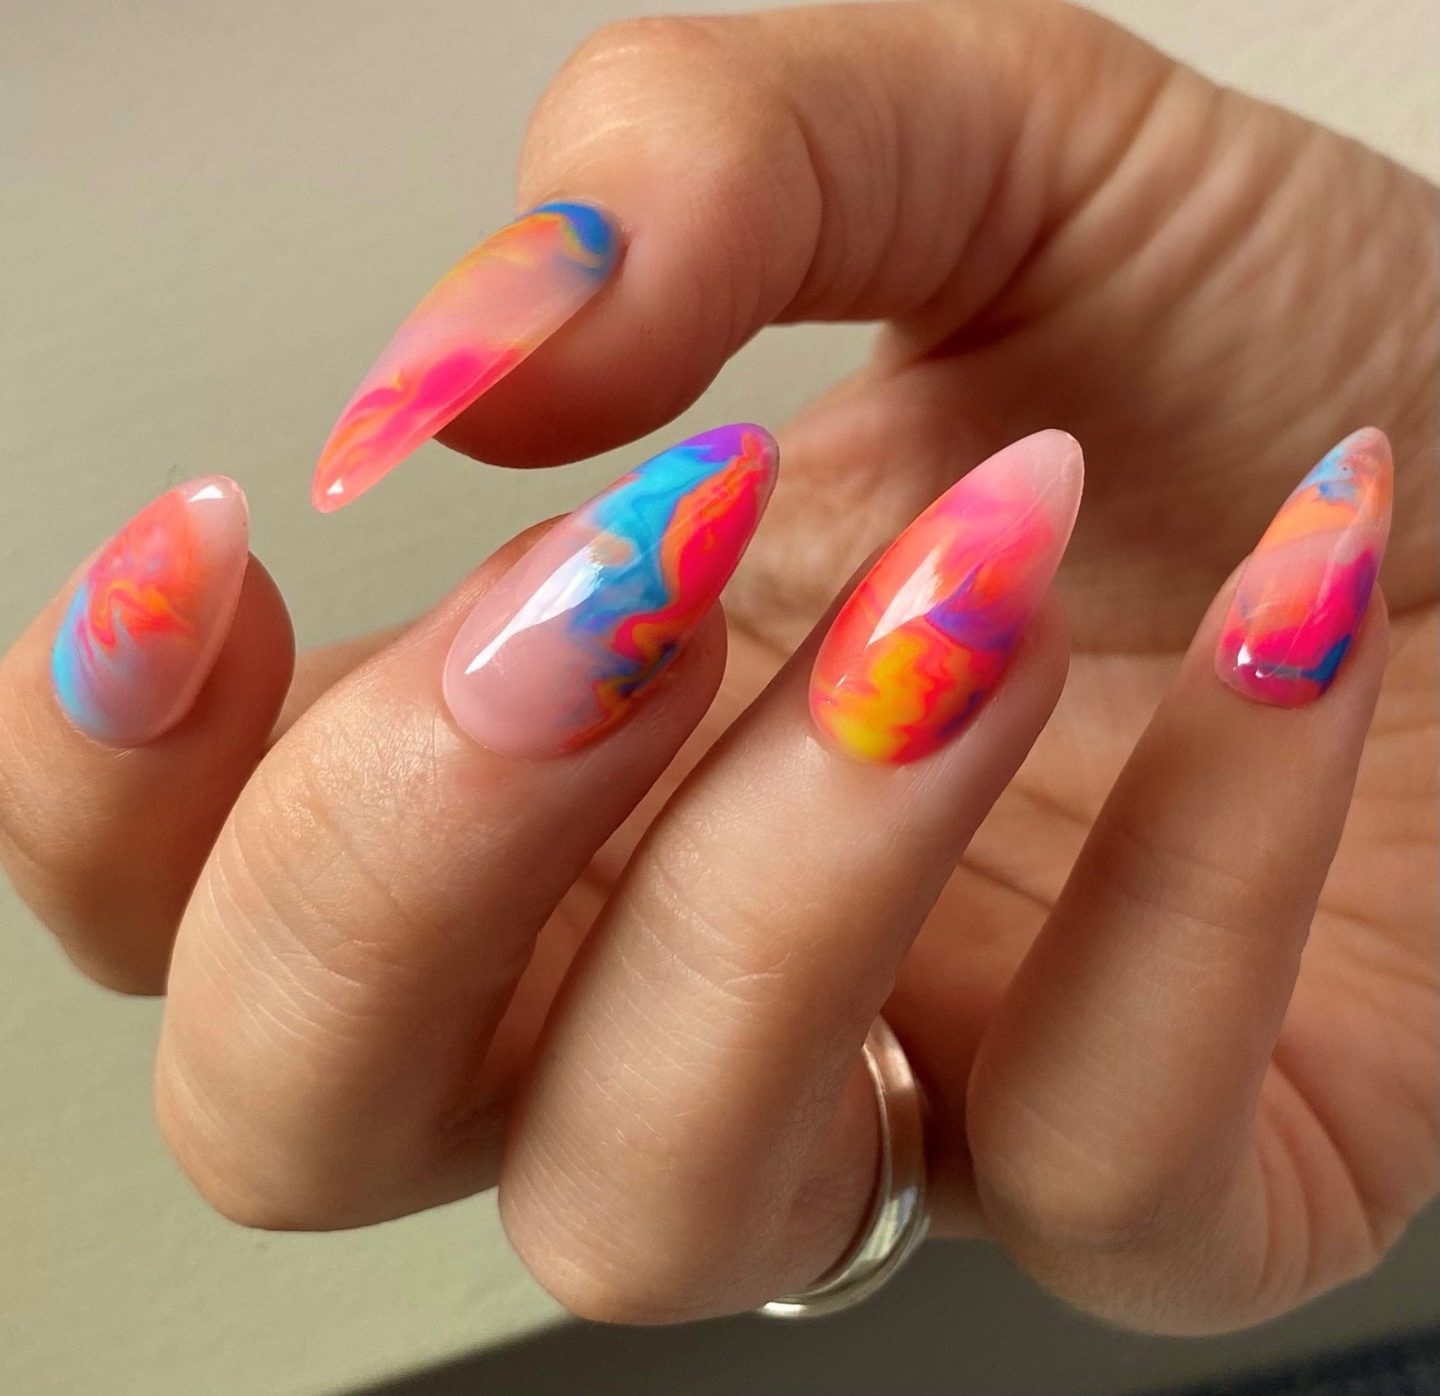 Cute pink and blue tie dye nails